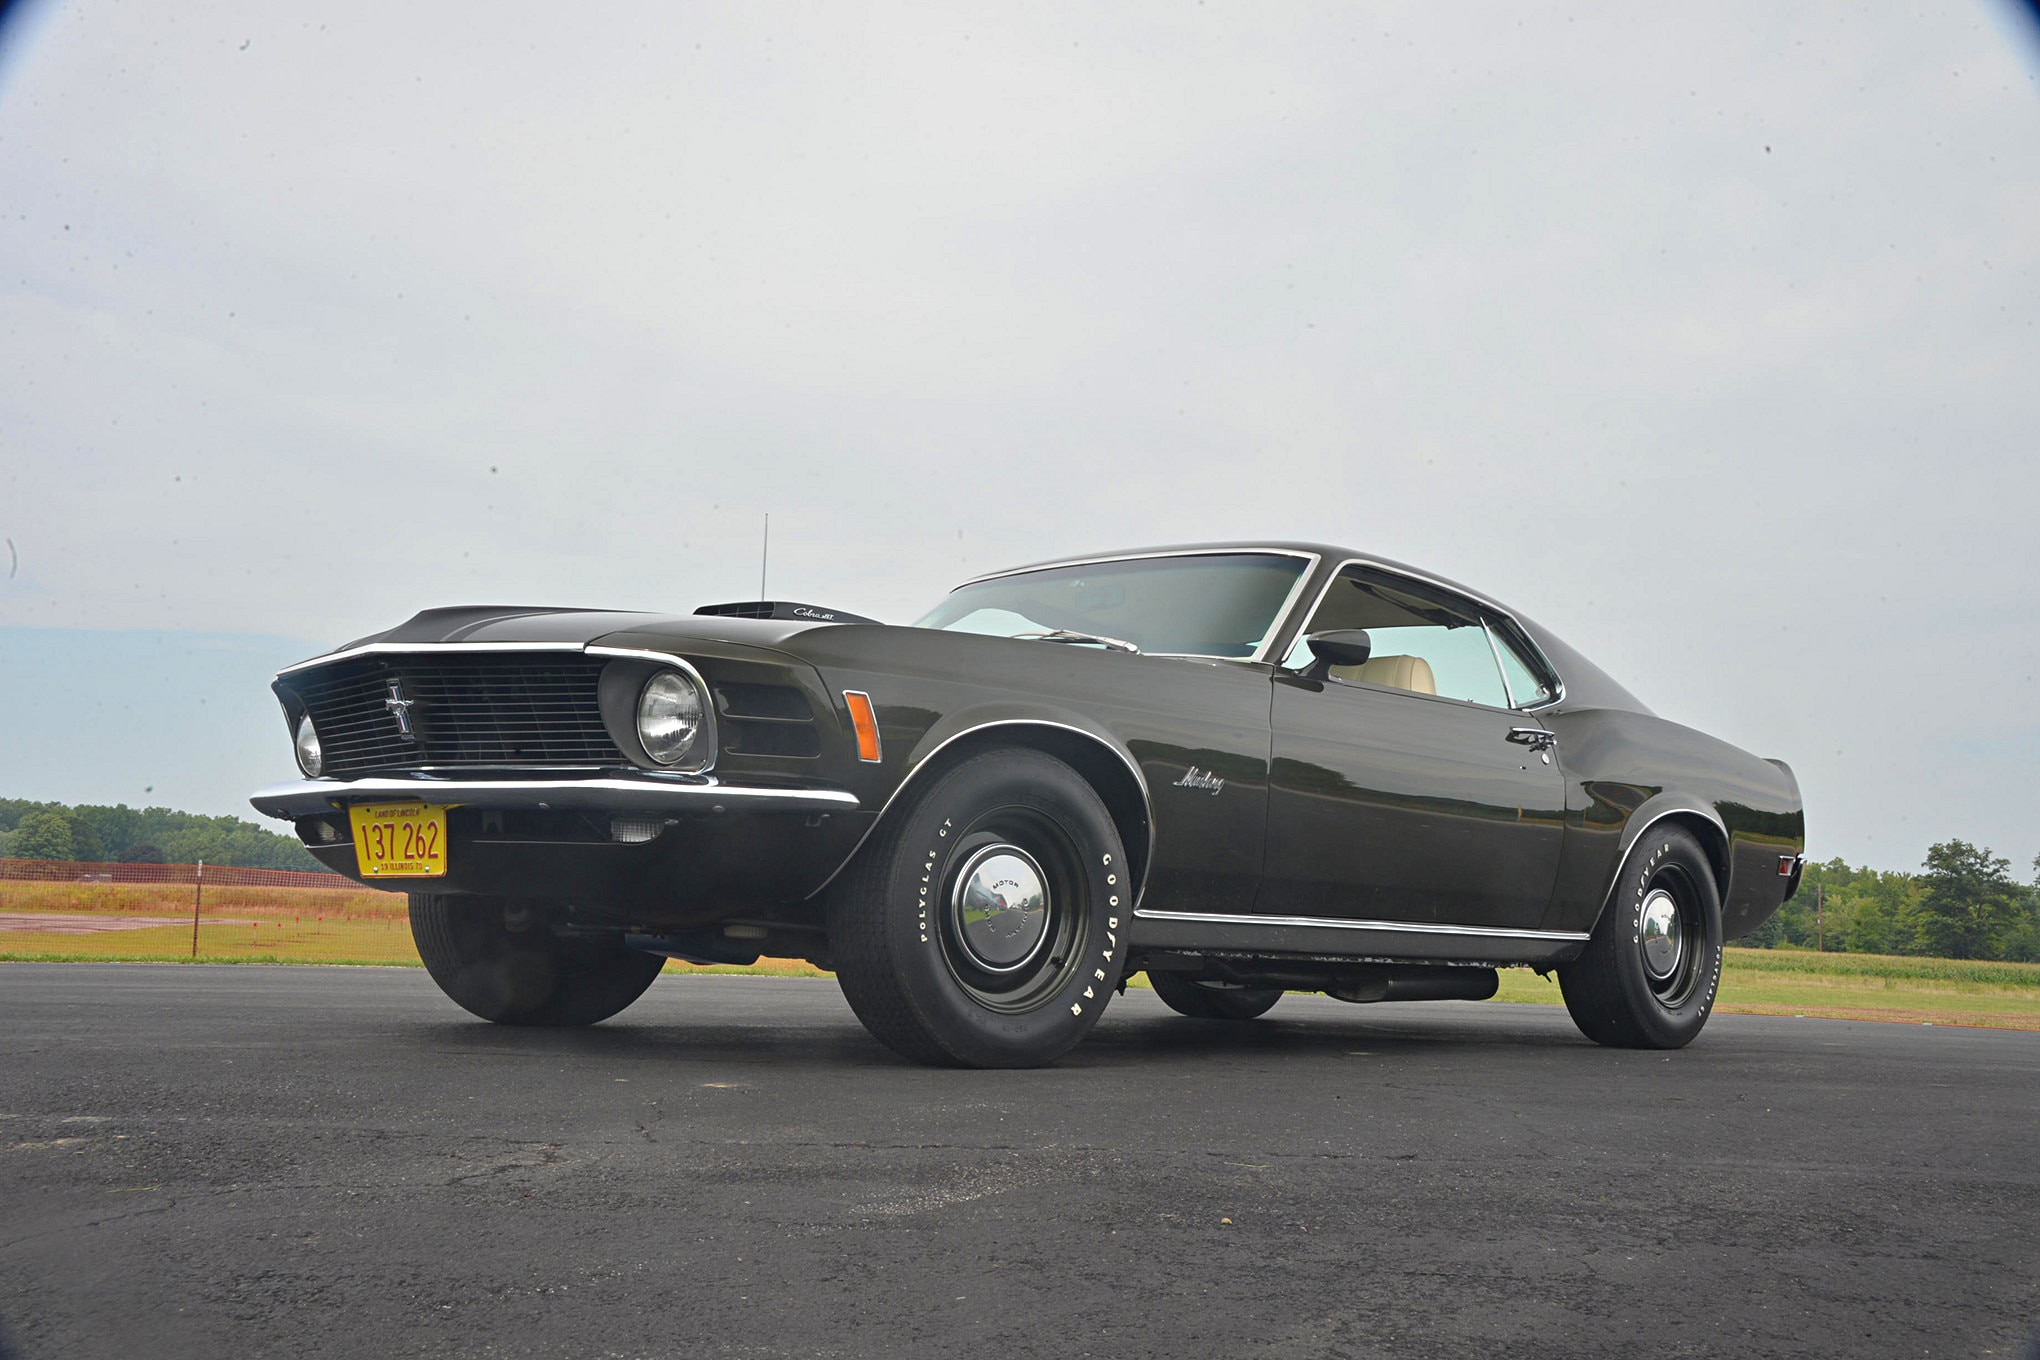 001 1970 CobraJet Fastback Goodie